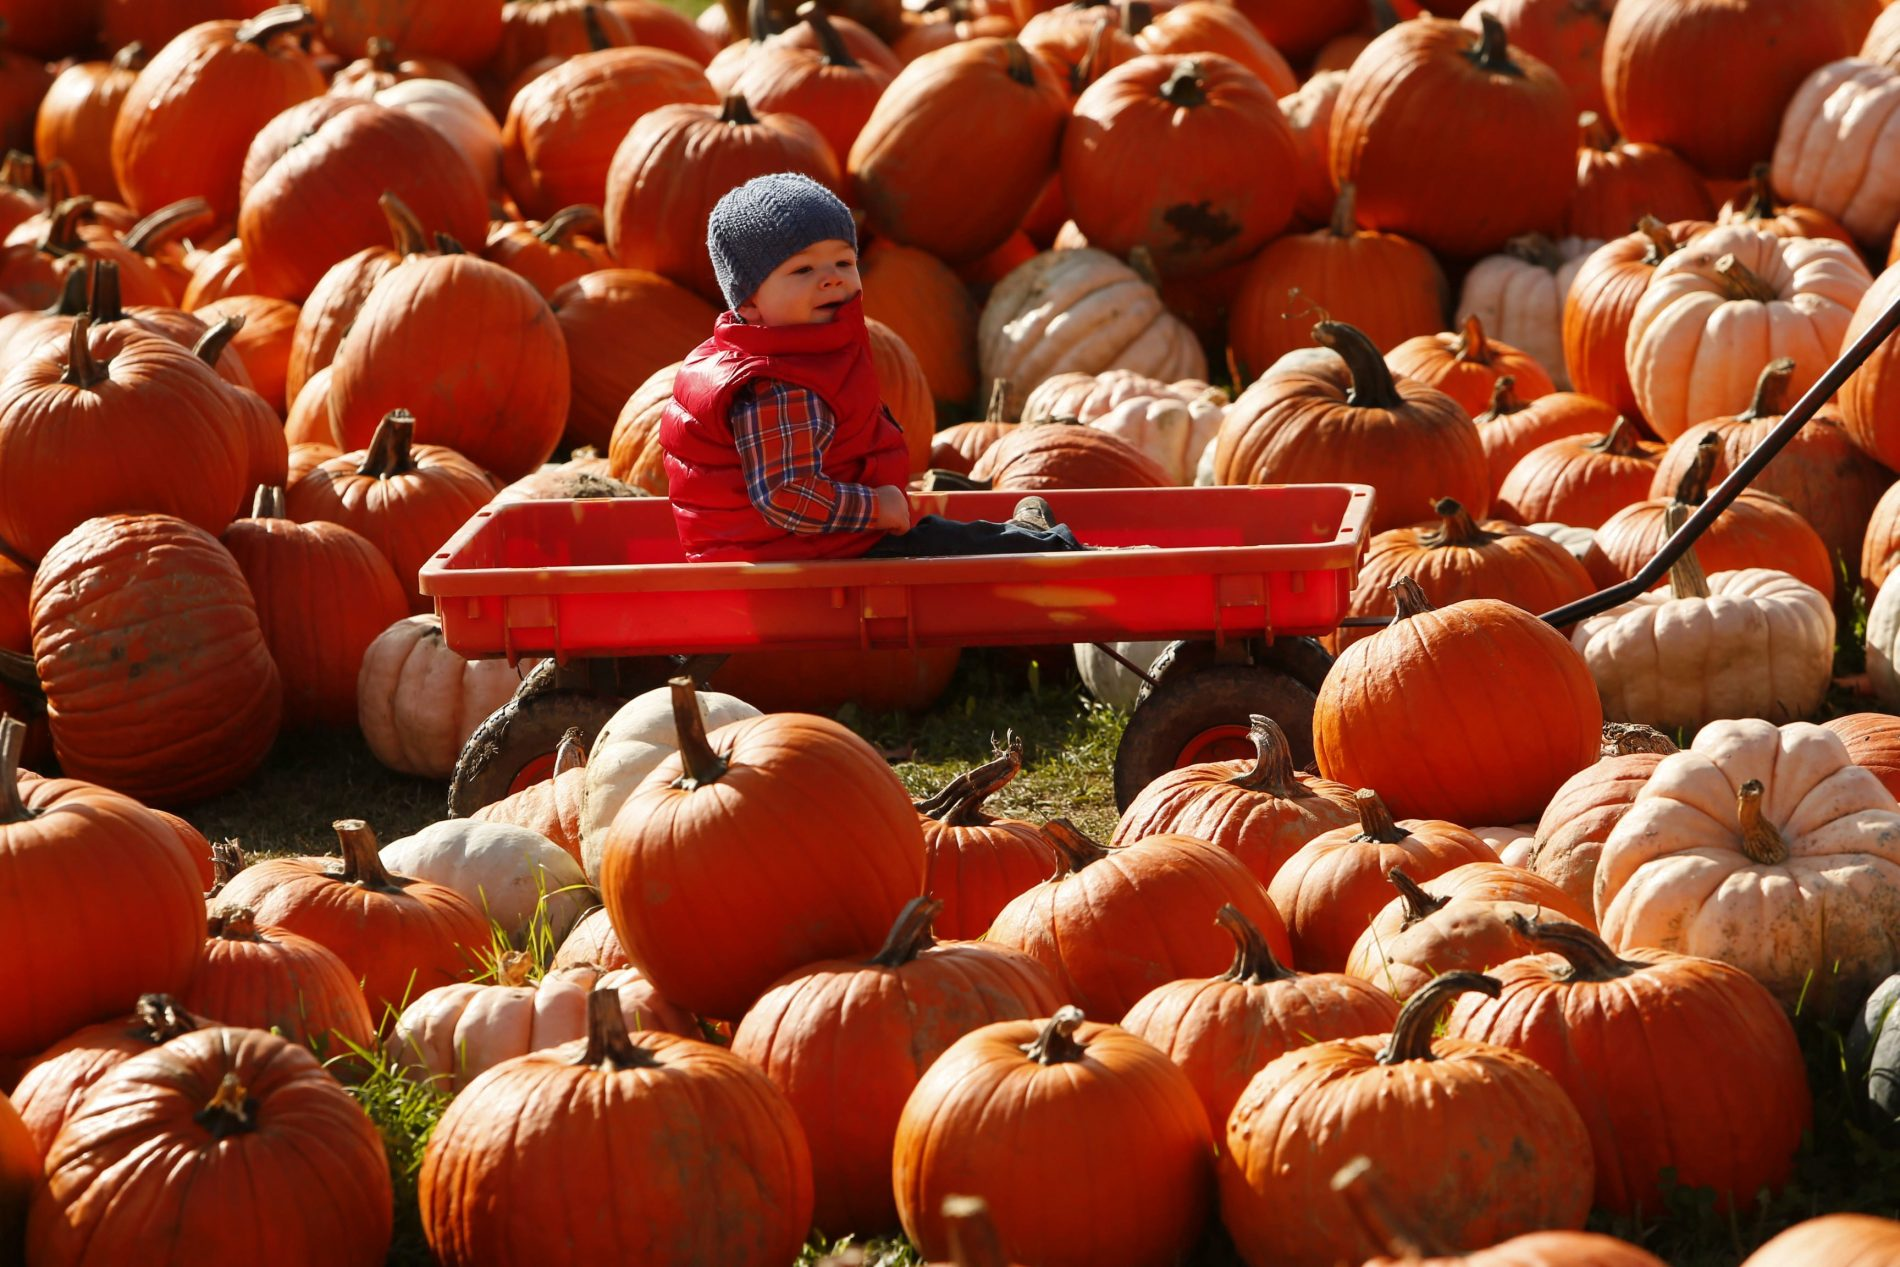 Western New York's many pumpkin patches deliver quality experiences. (Derek Gee/Buffalo News)